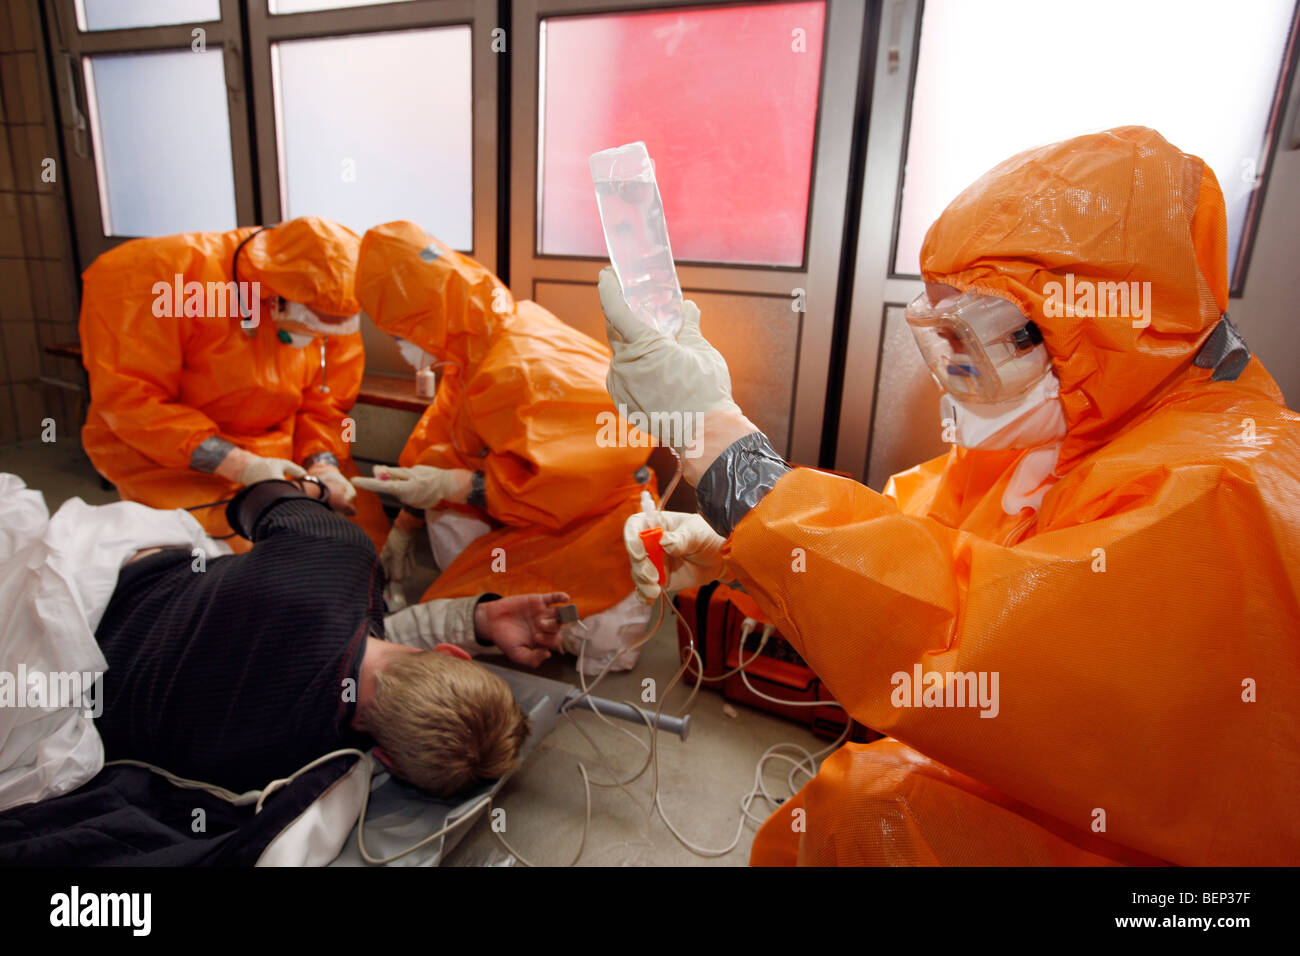 Exercise of a fire brigade, mass vaccination of people against a virus, pandemic exercise, Essen, Germany. Stock Photo